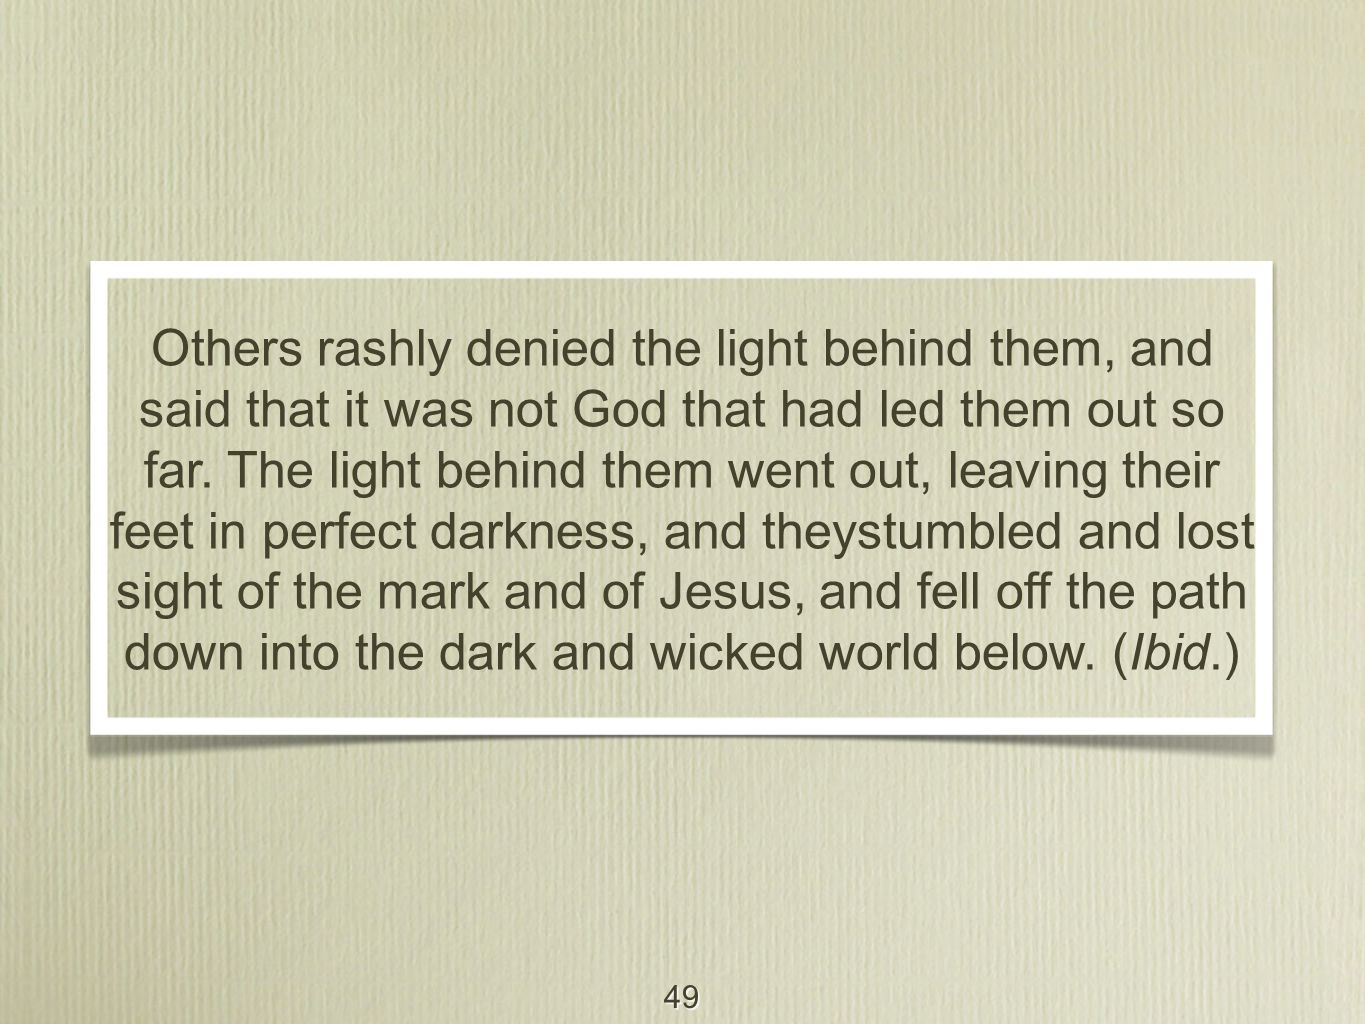 49 Others rashly denied the light behind them, and said that it was not God that had led them out so far. The light behind them went out, leaving thei